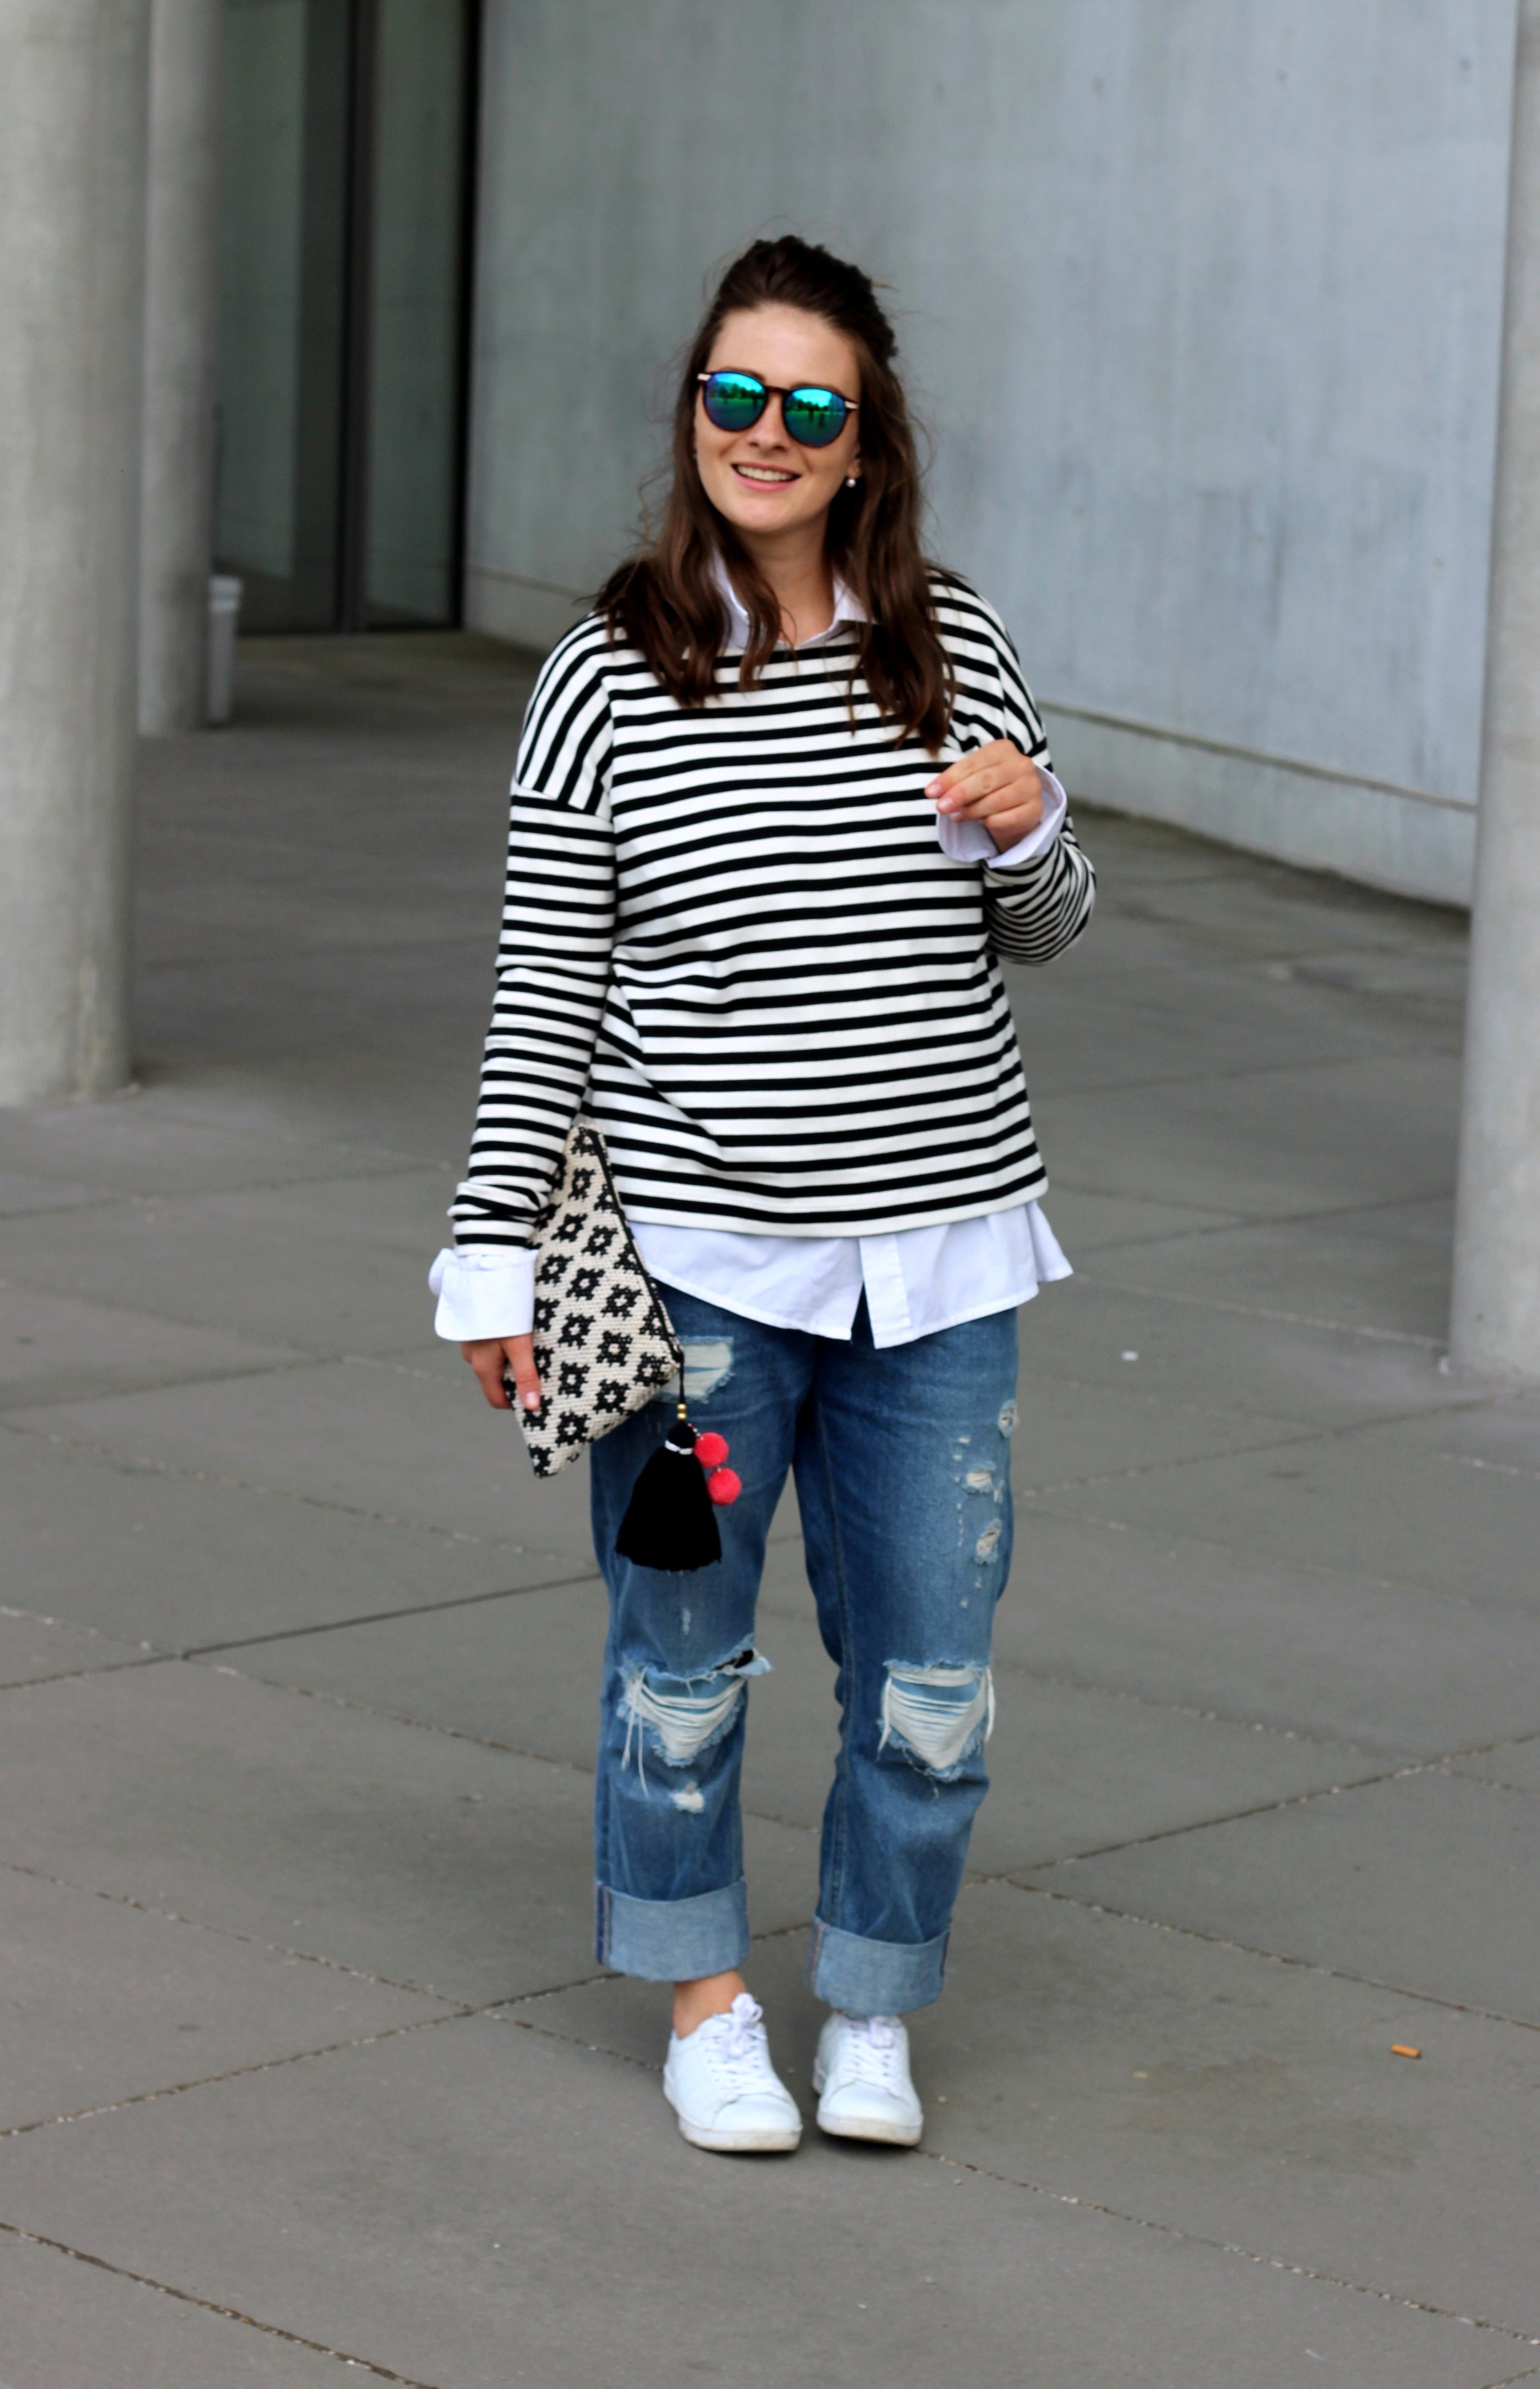 annaporter-classic-outfit-look-jeans-stripes-white-sneakers-asos-mango-clutch